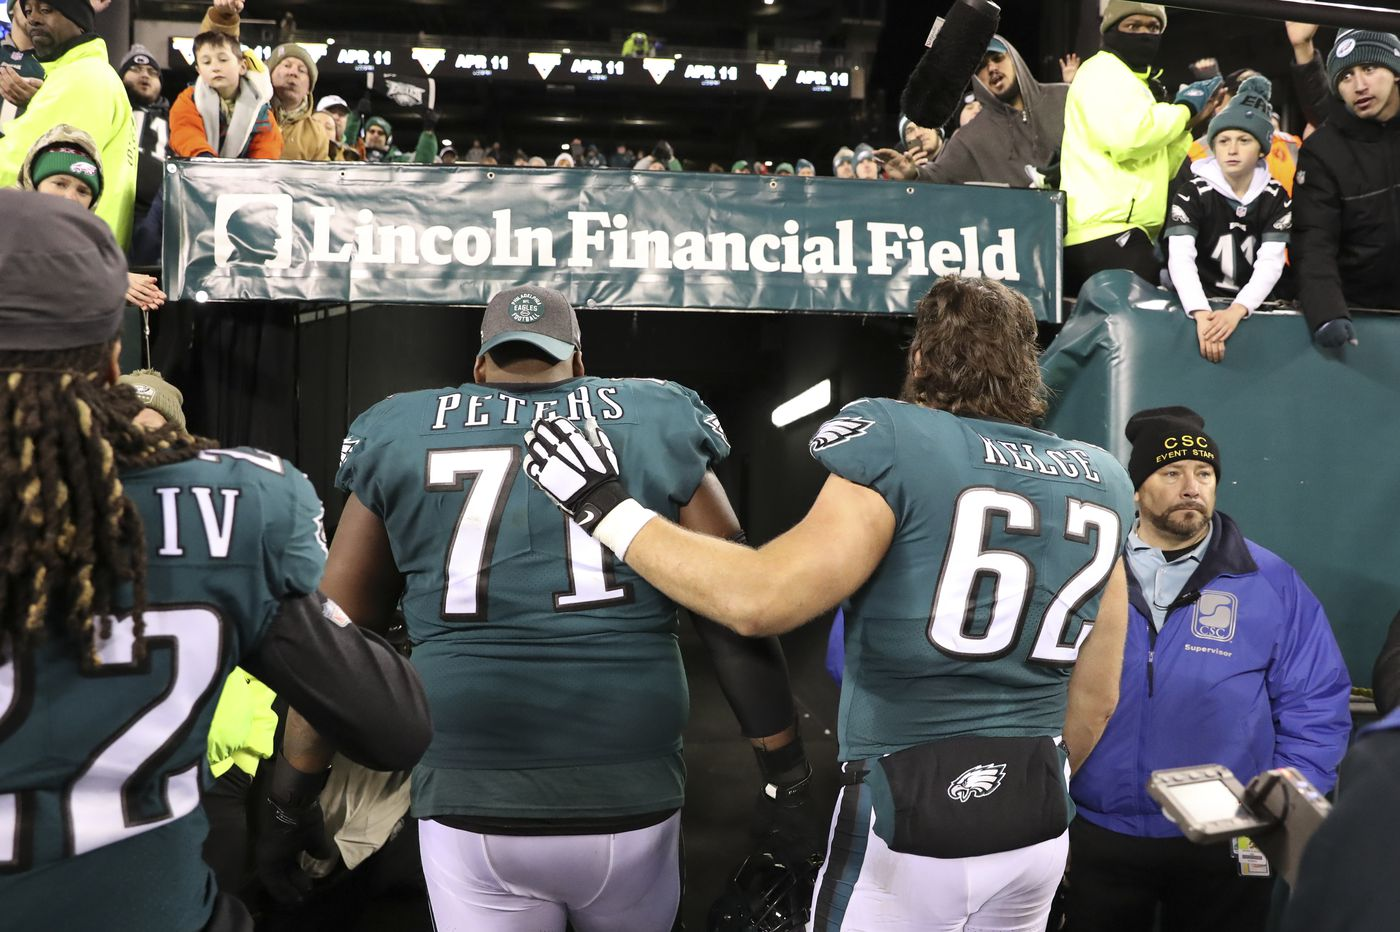 Eagles' season ends with 17-9 loss to Seahawks in NFL playoffs, and Carson Wentz's concussion